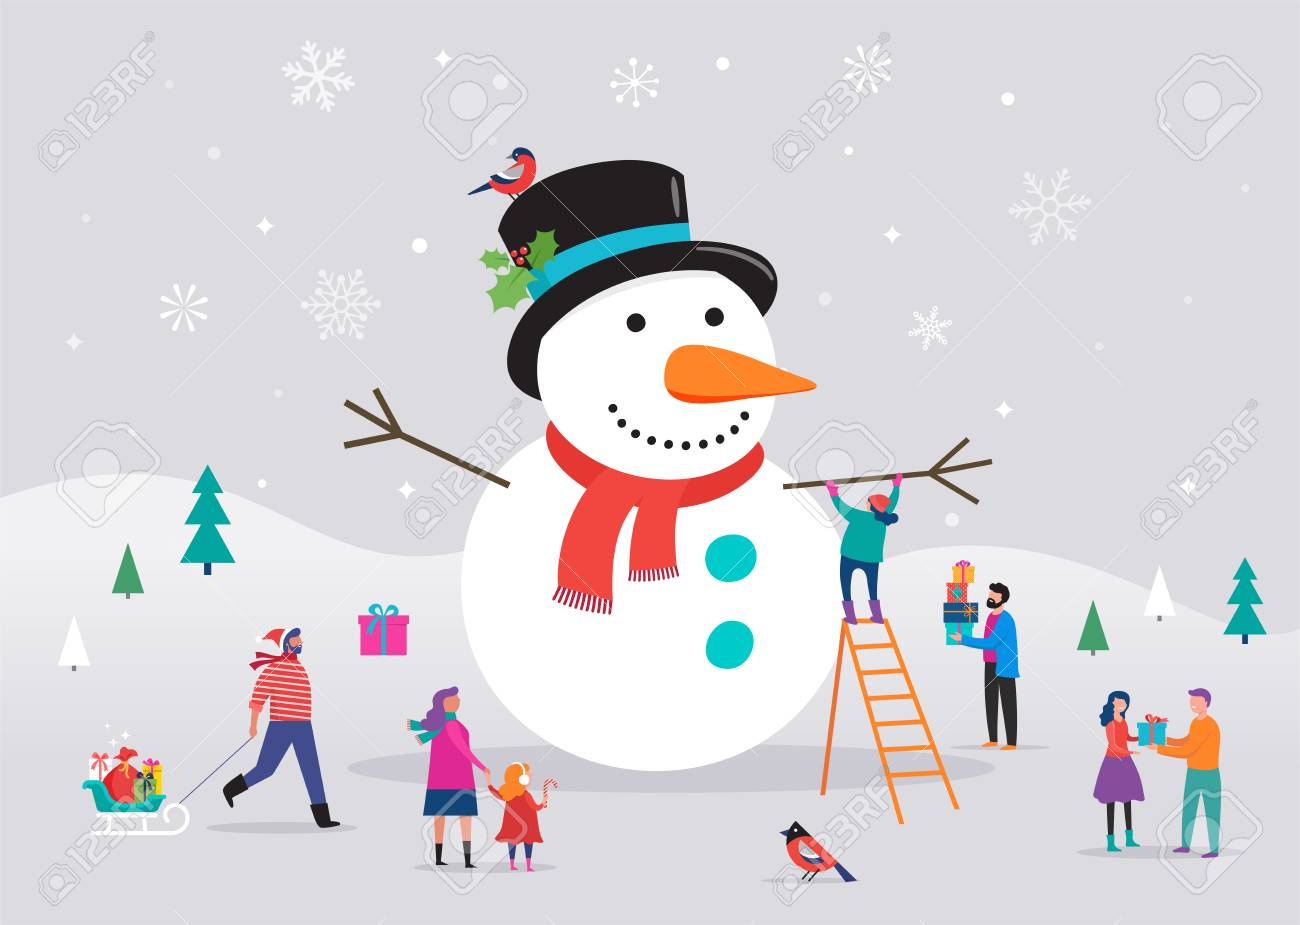 Huge Christmas Card.Merry Christmas Card Background Bannner With Huge Snowman And